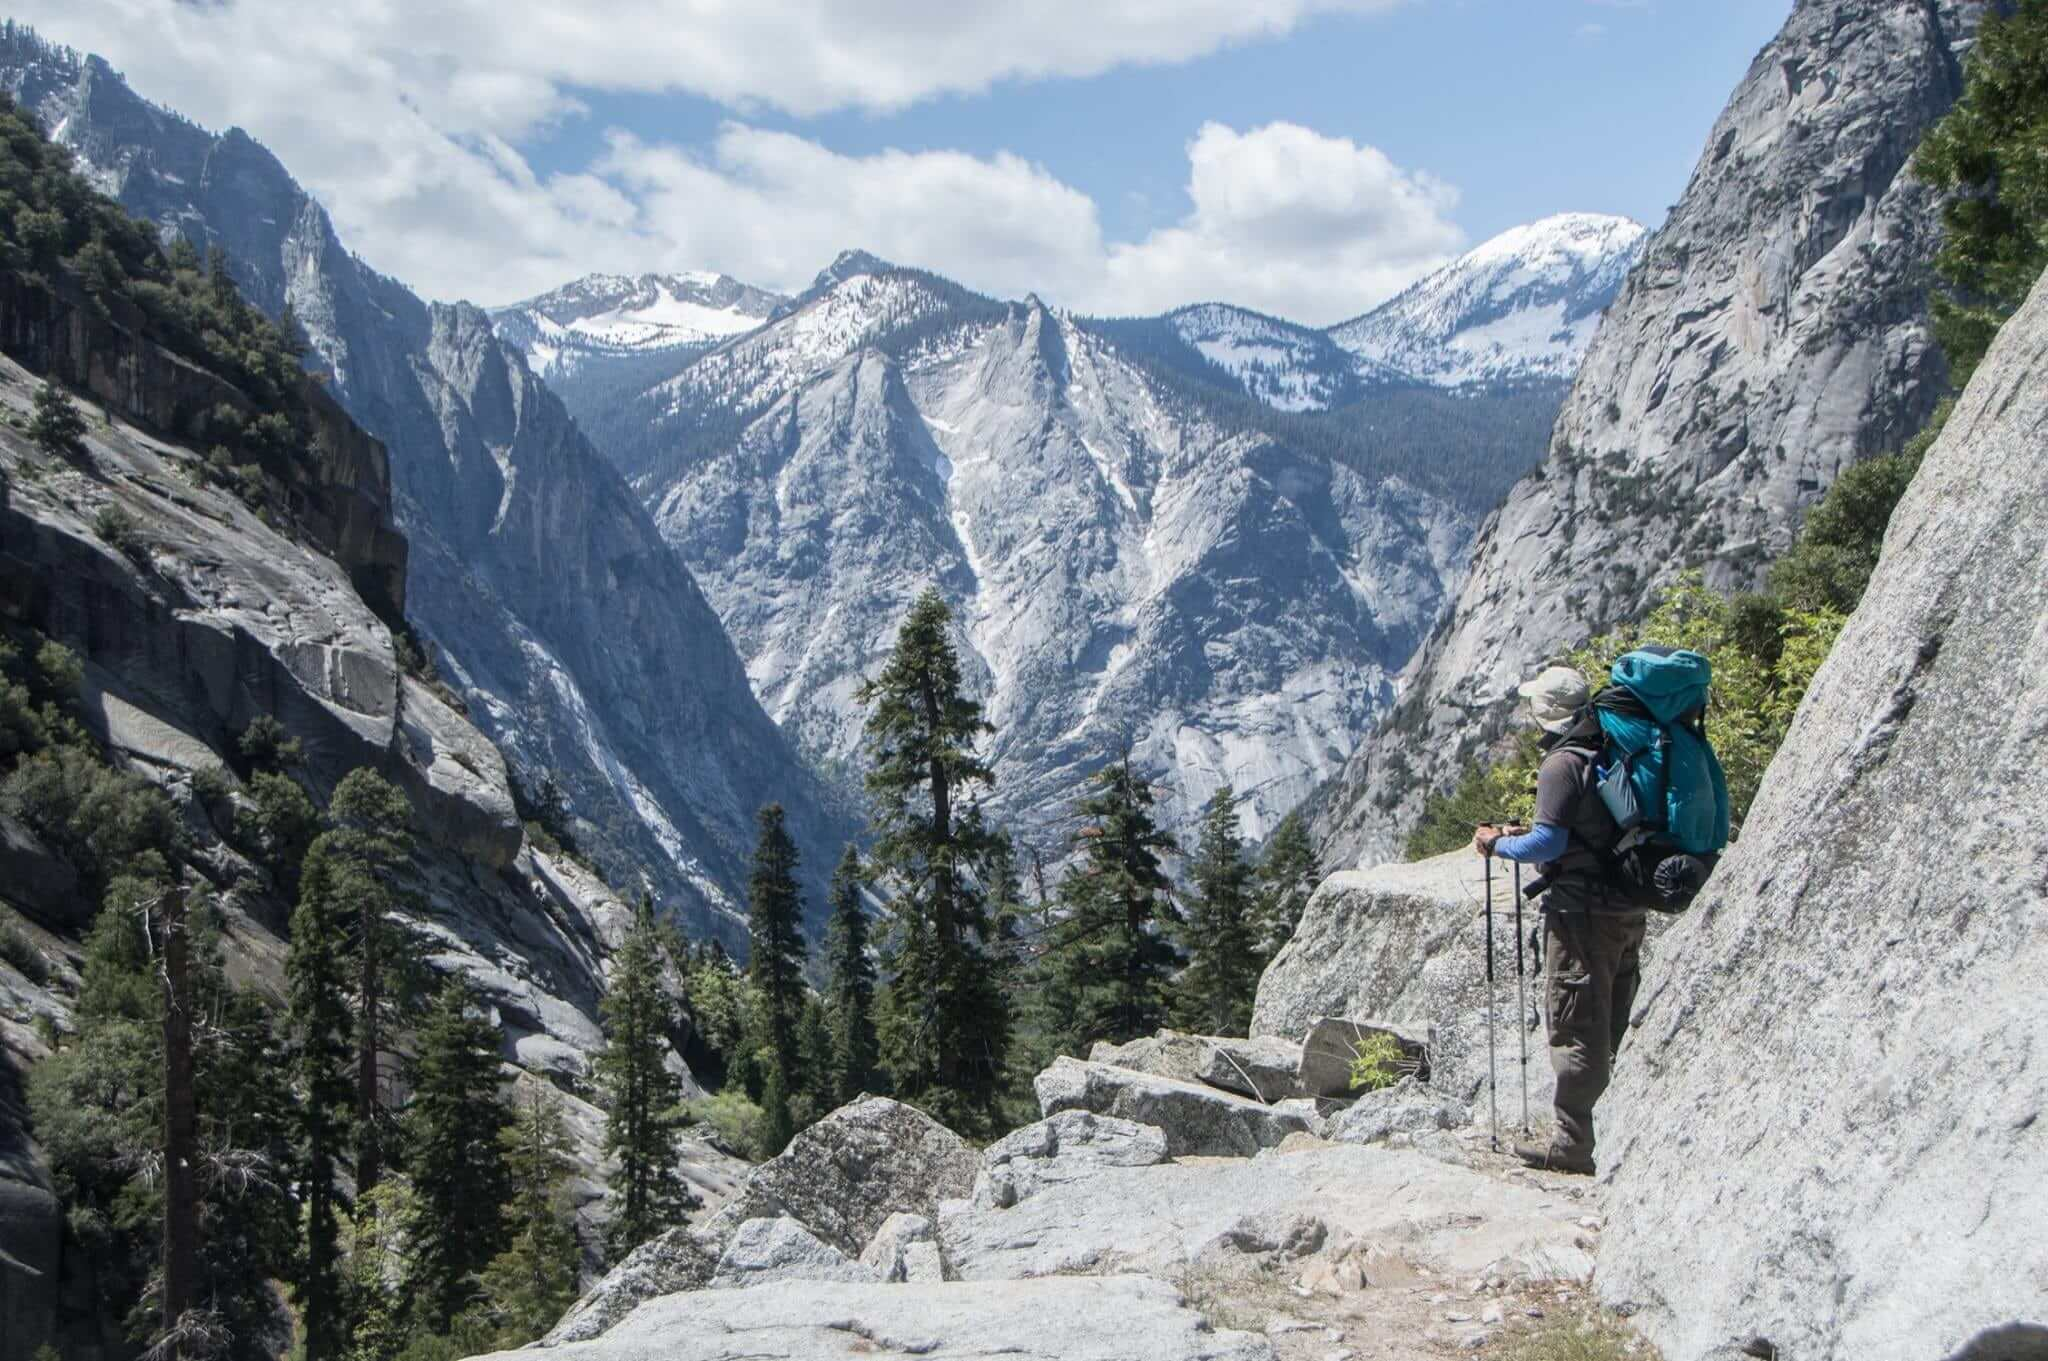 Man standing on ledge looking over Kings Canyon National park while hiking